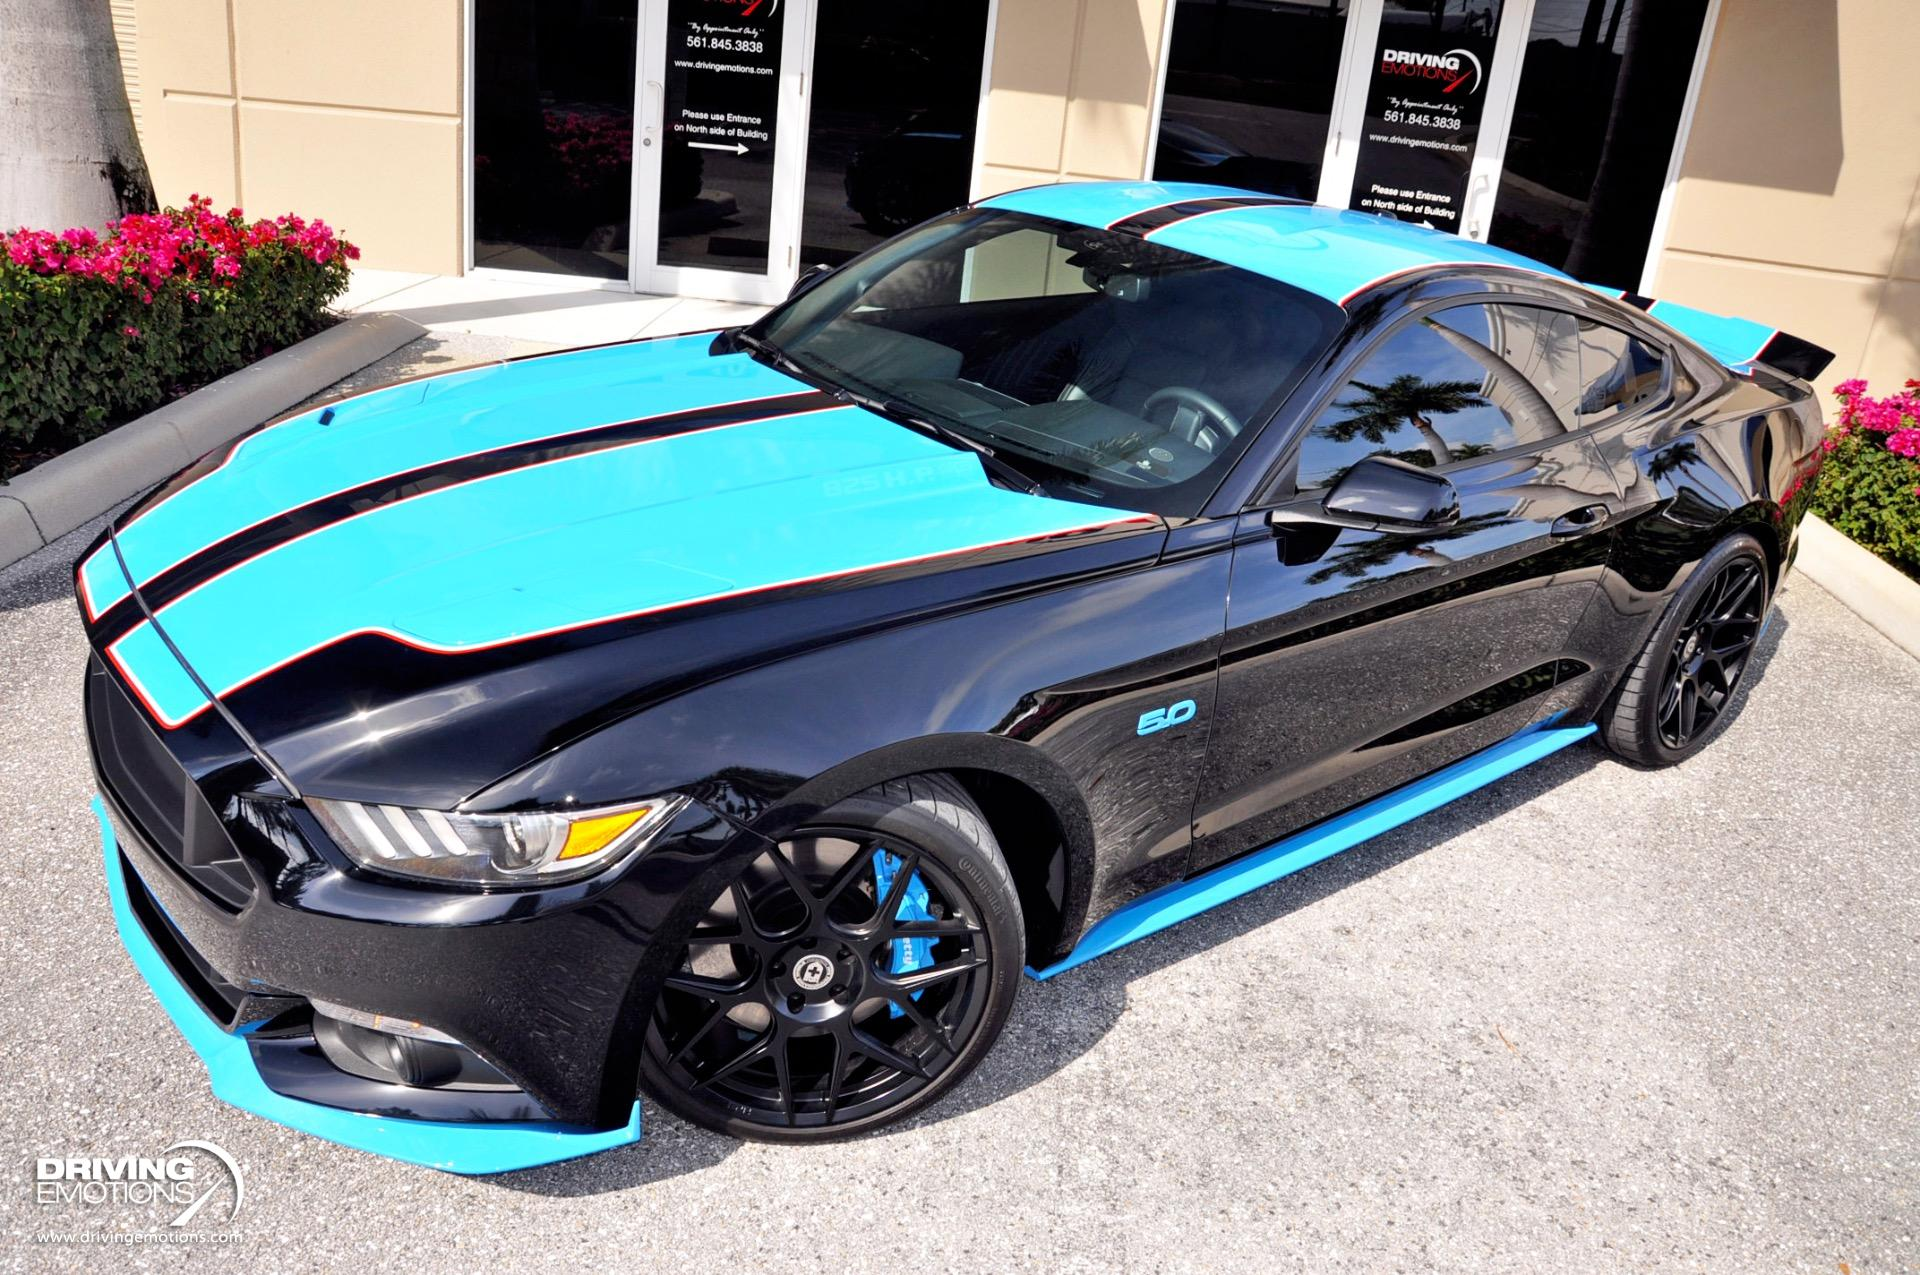 Used 2017 Ford Mustang GT Pettys Garage King Premier Edition GT Premium | Lake Park, FL